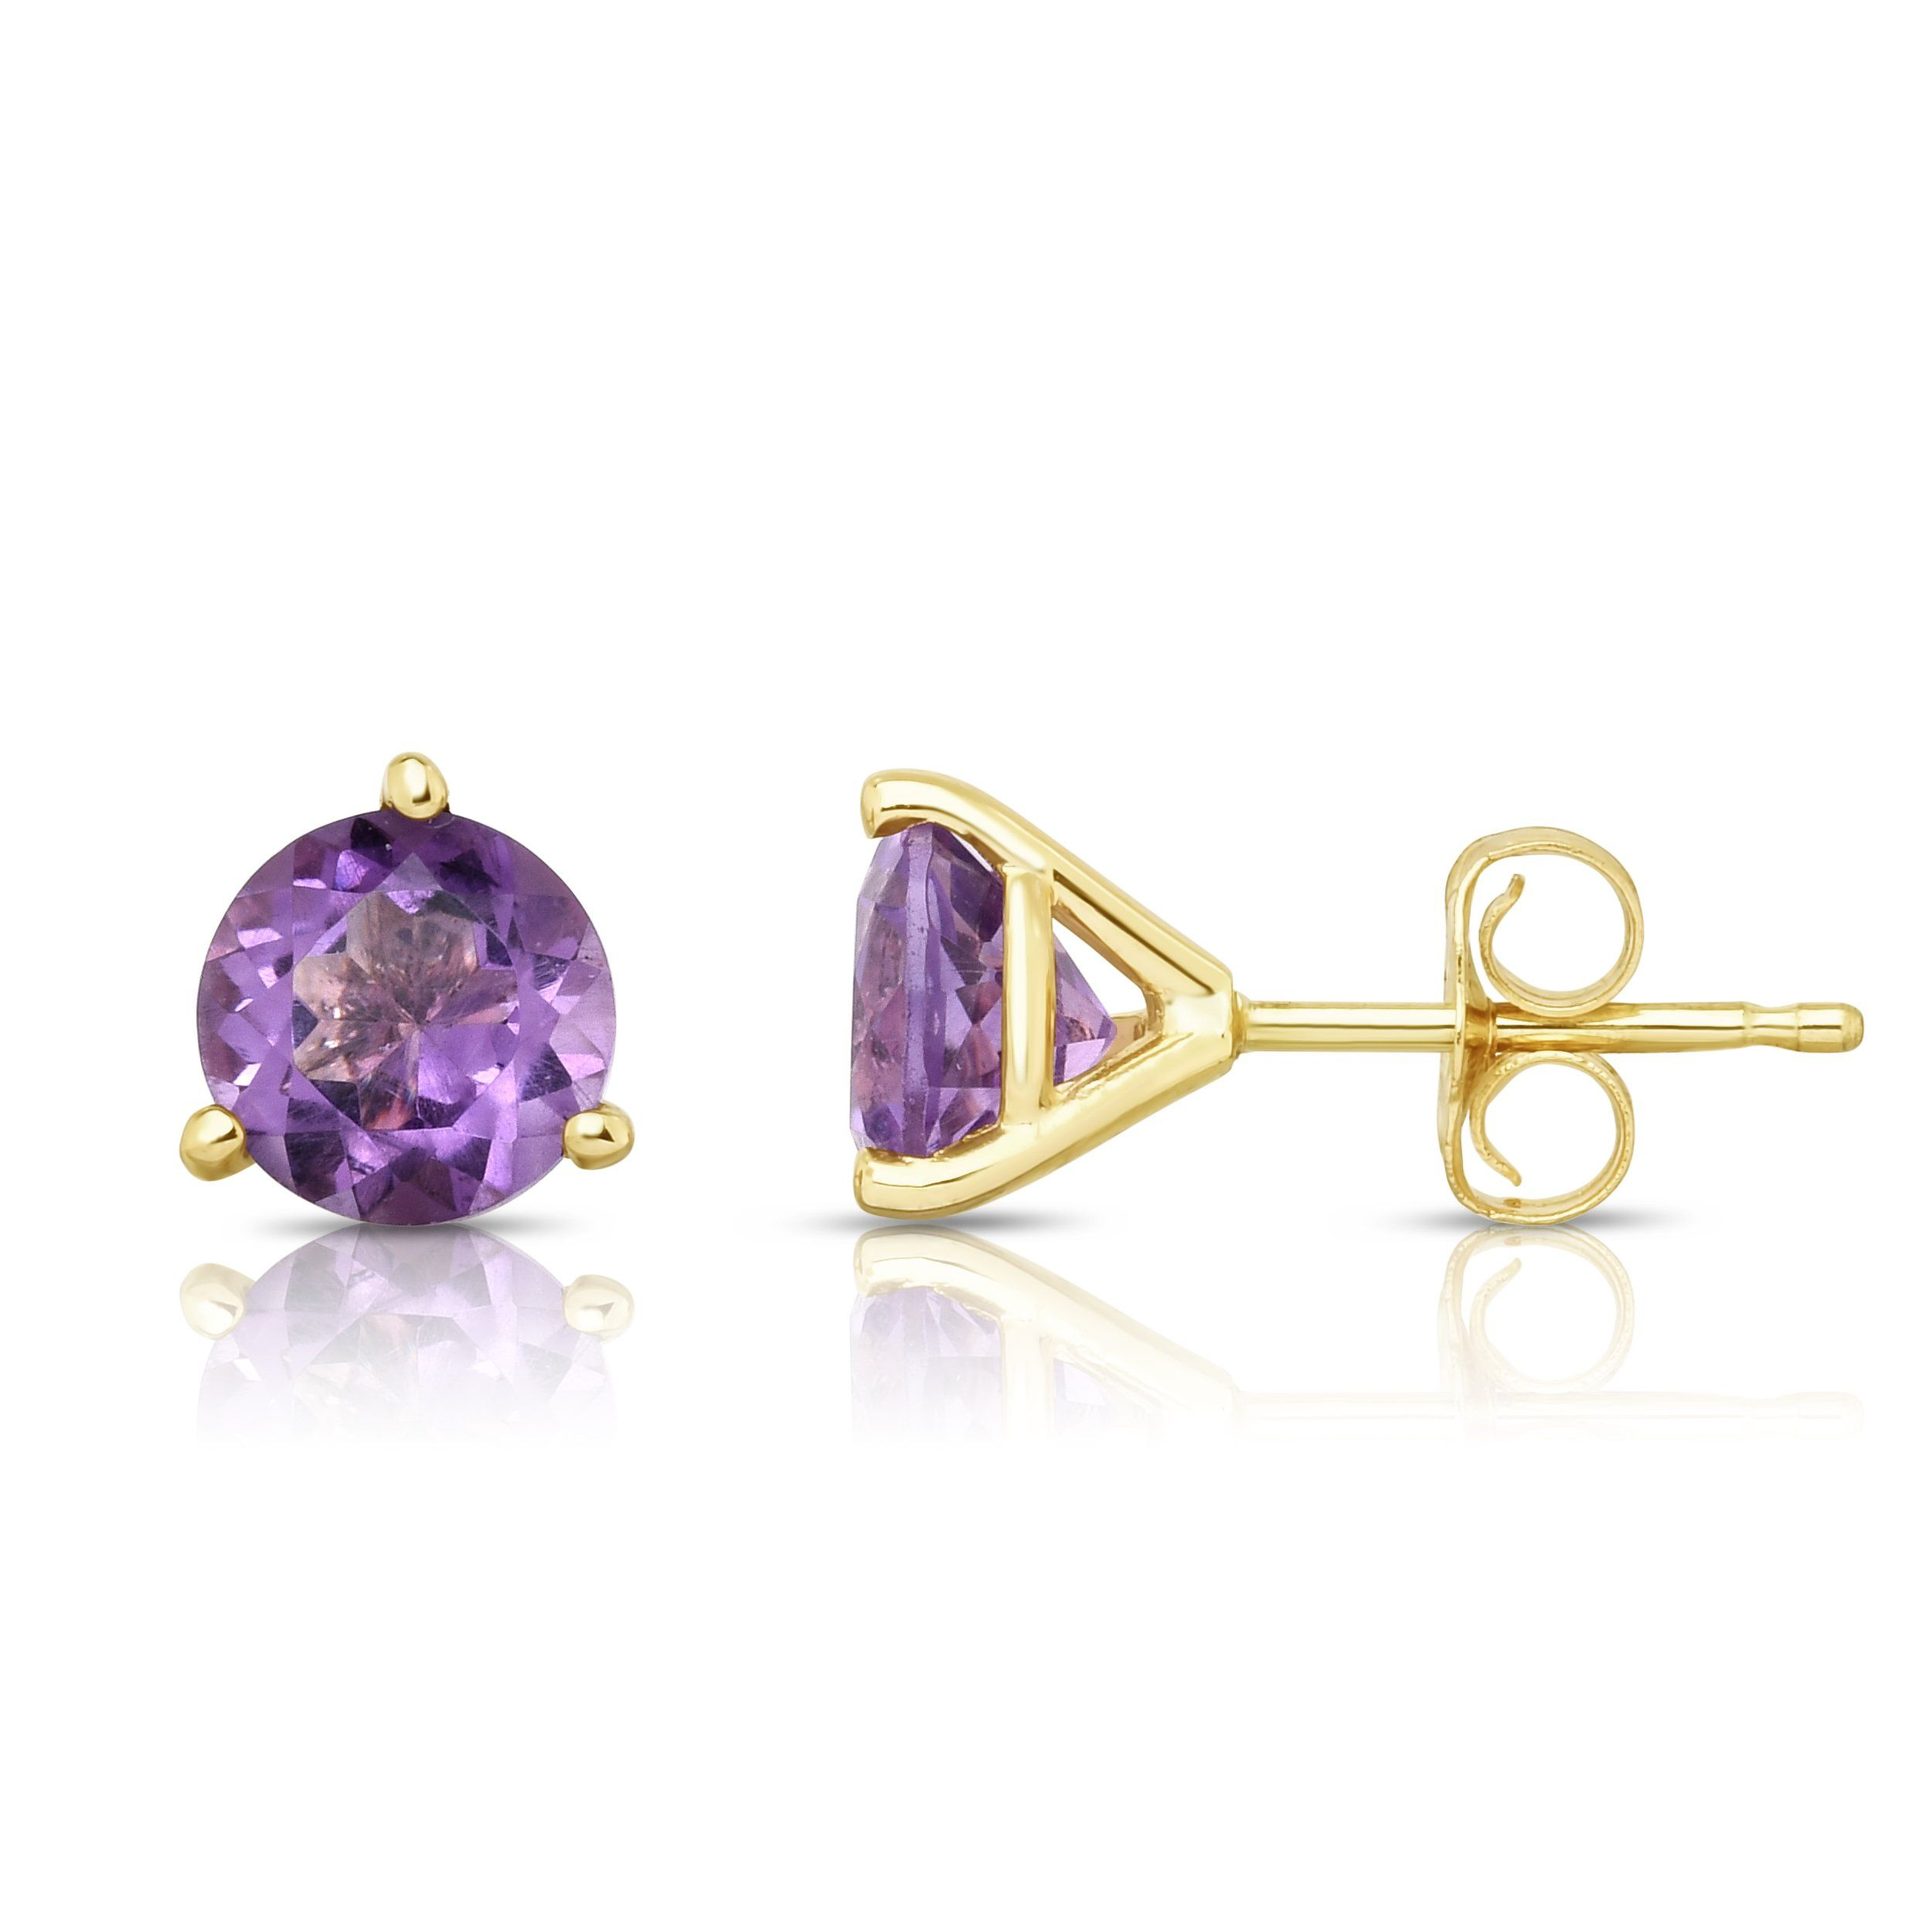 Noray Designs 14K Yellow Gold Amethyst Stud Earrings (6 MM; Round Cut; Martini Setting). Our jewelry is Made in USA. Gemstones may have been treated to improve color and appearance. The process is safe and permanent. Free Shipping on all orders. Free Jewelry Gift Box on all purchases. 30 Day Warranty.